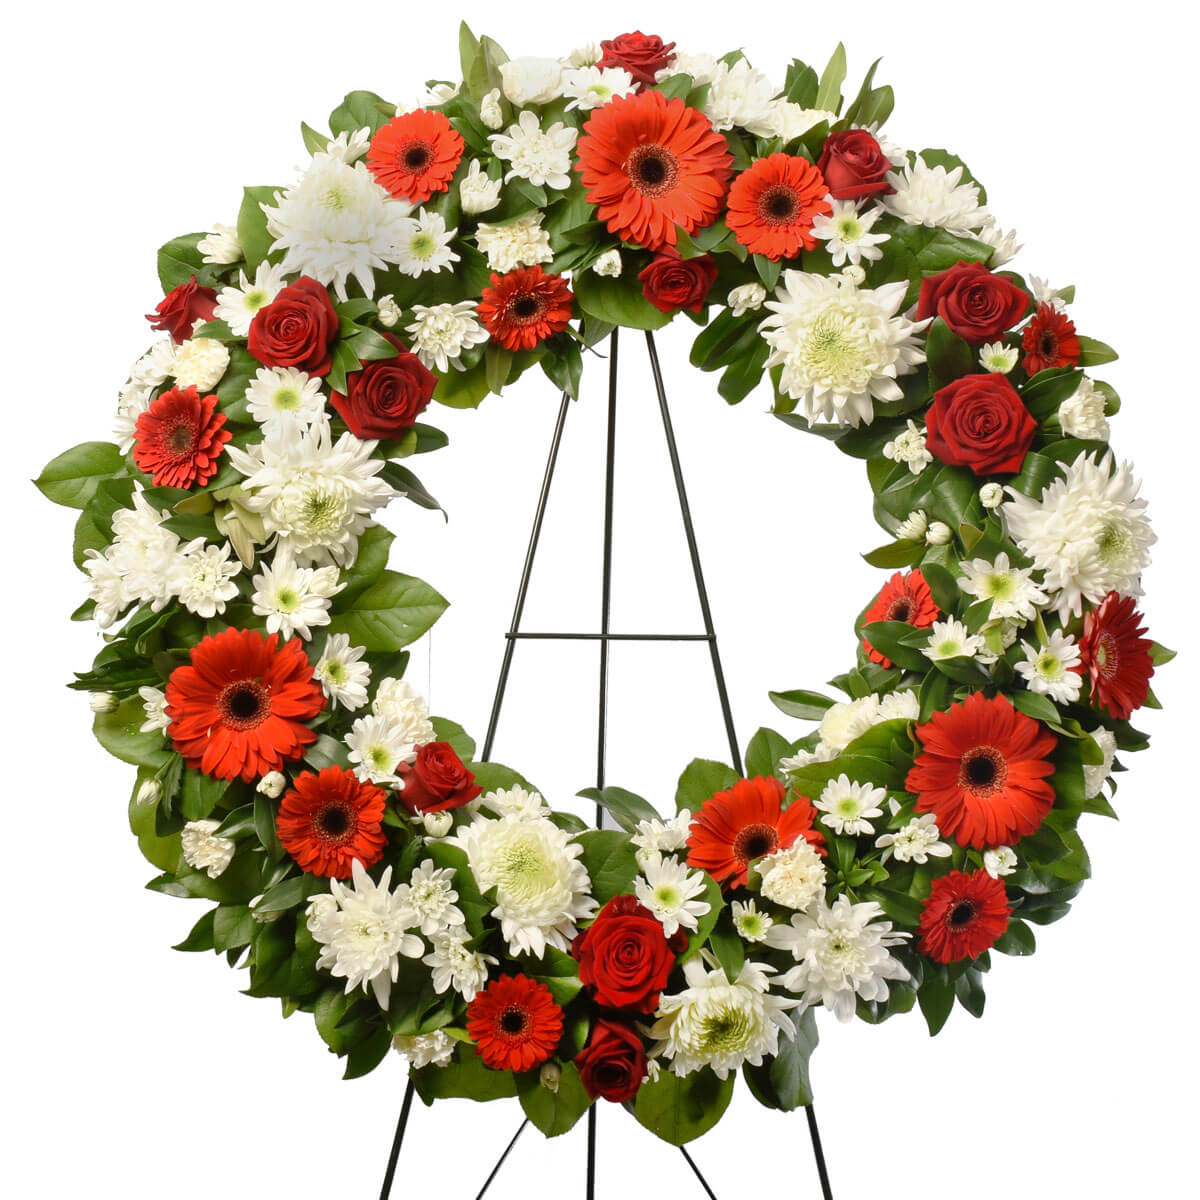 North Vancouver Flower Arrangements for Funerals | Adele Rae Florist